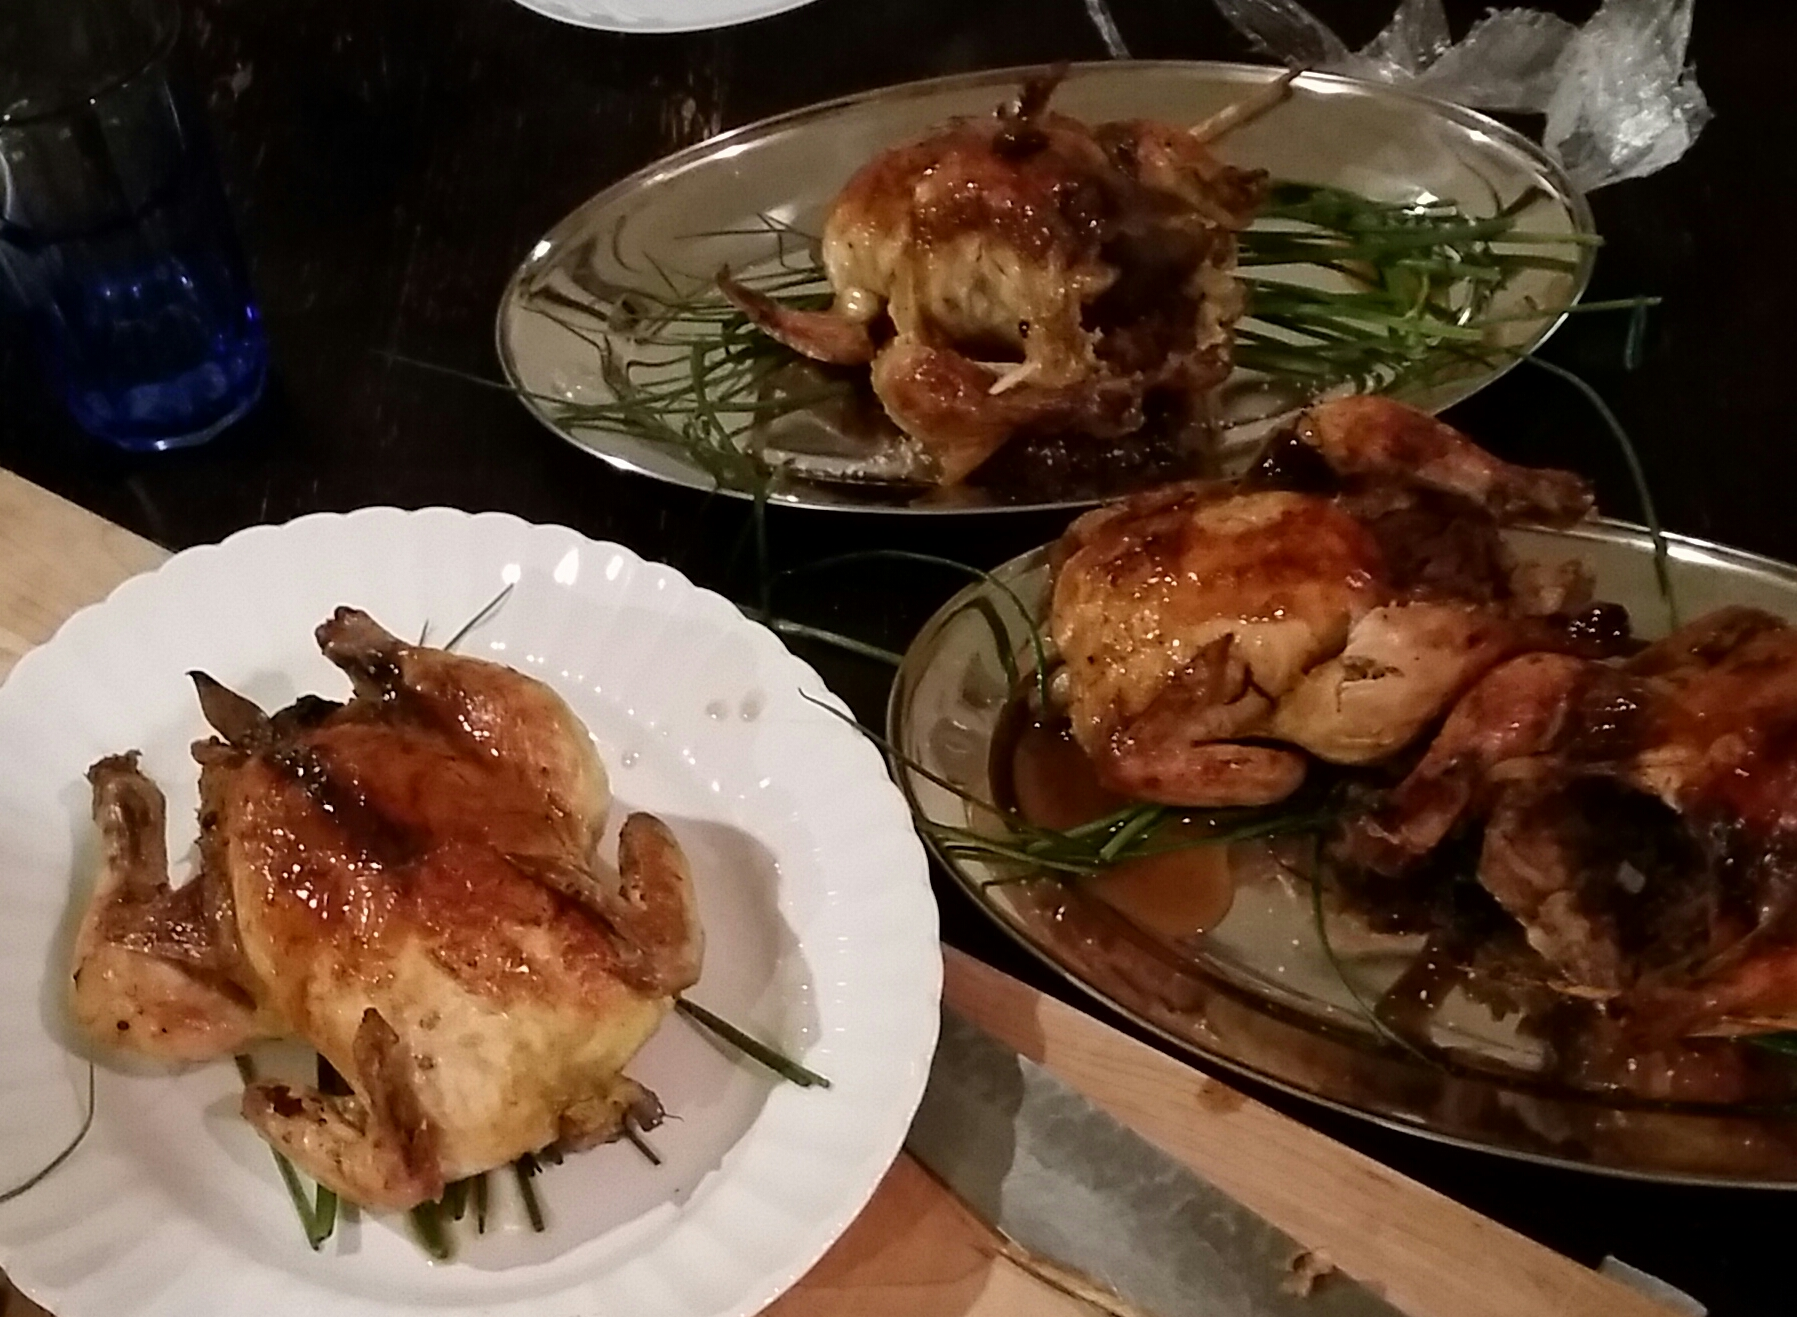 Brined for days and stuffed to the gills.